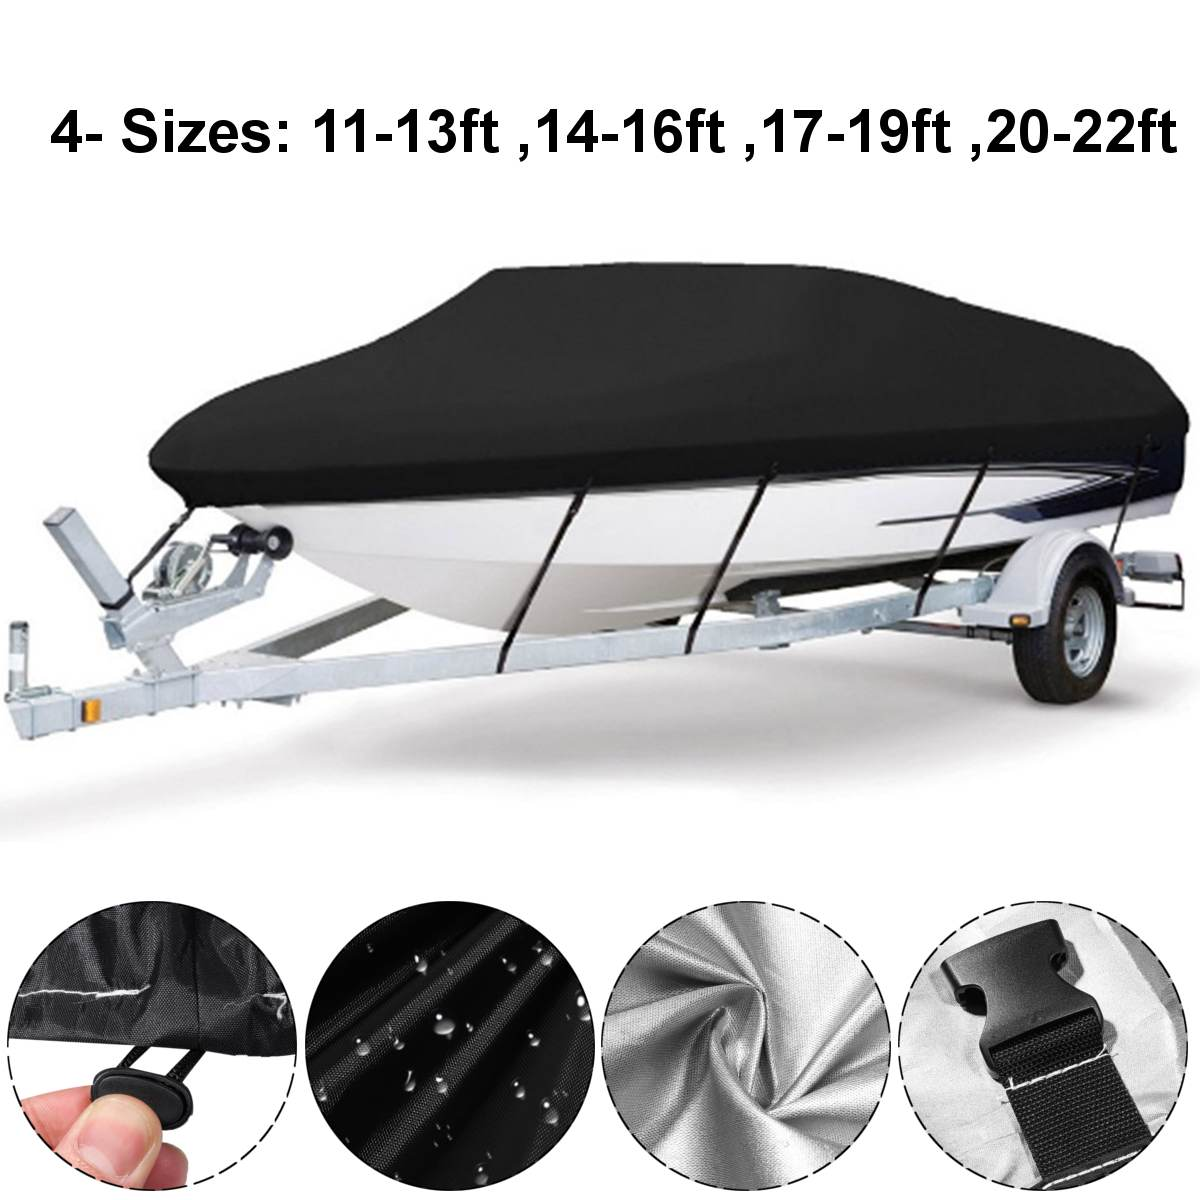 11-13ft 14-16ft 17-19ft 20-22ft Boat Cover Anti-UV Waterproof Heavy Duty 210D Marine Trailerable Canvas Boat Accessories enlarge